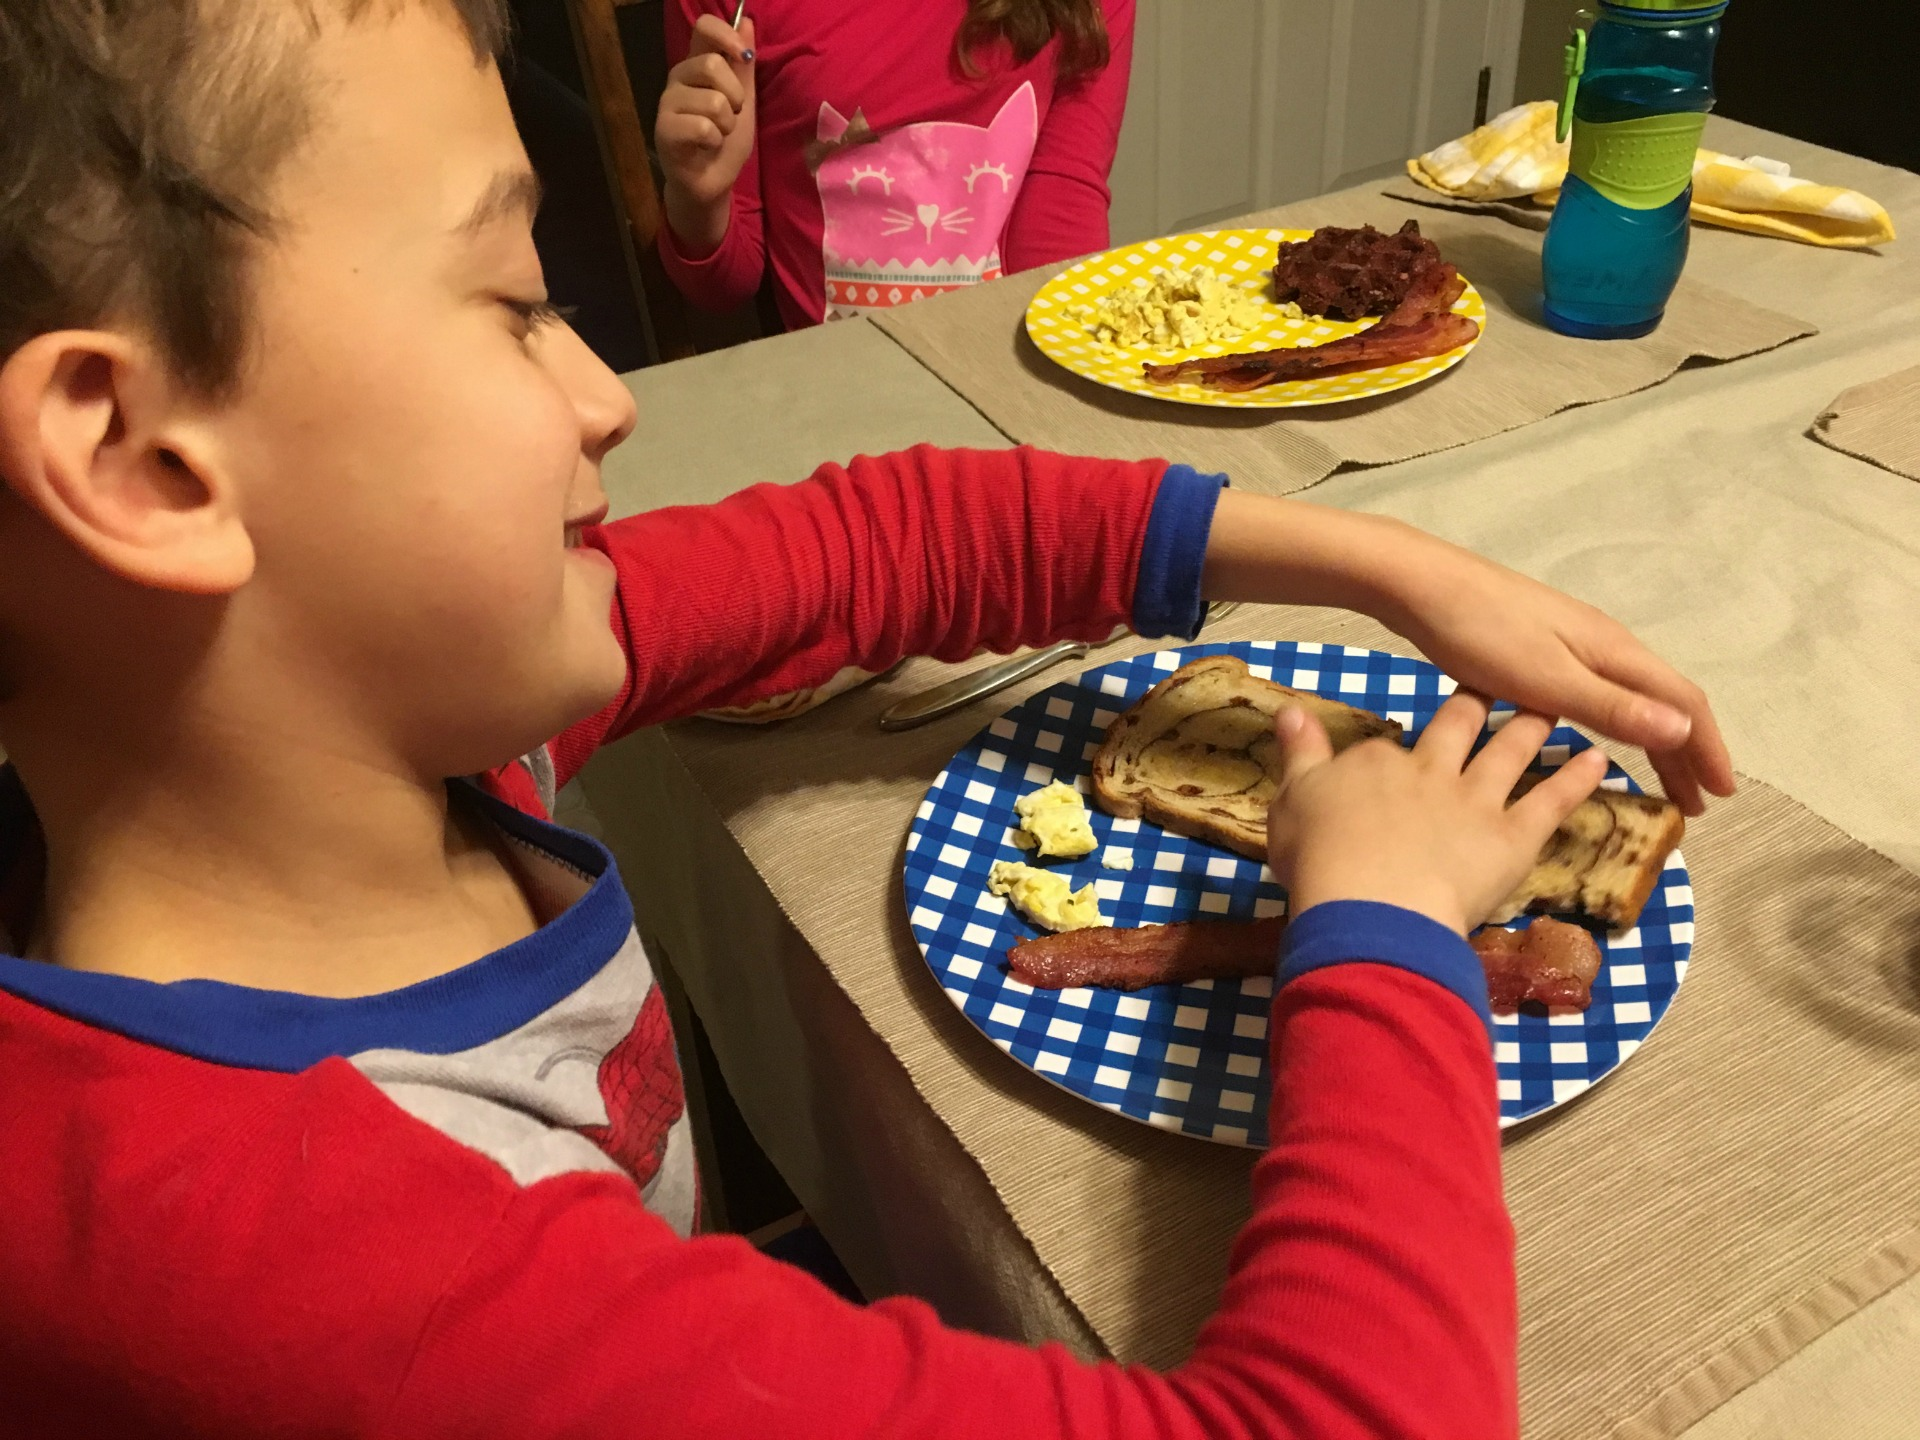 You want to enjoy quality family meals together, but how? Find out how to get rid of barriers to dinnertime with these tips for eating together as a family.